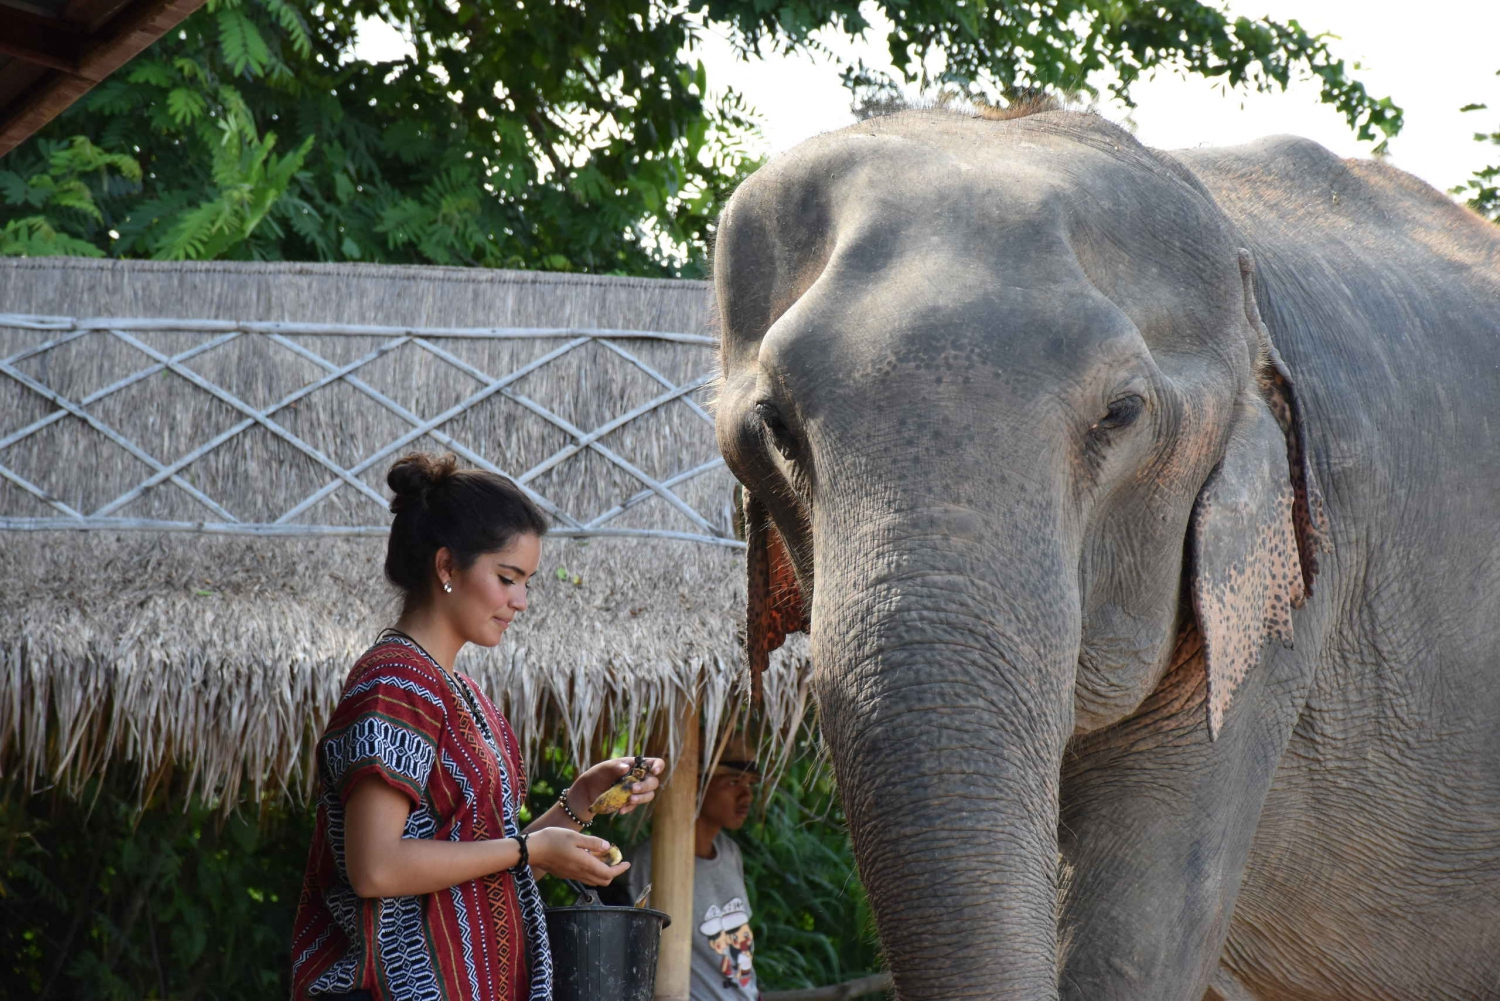 Pattaya's Ethical Choice: Elephant Jungle Sanctuary